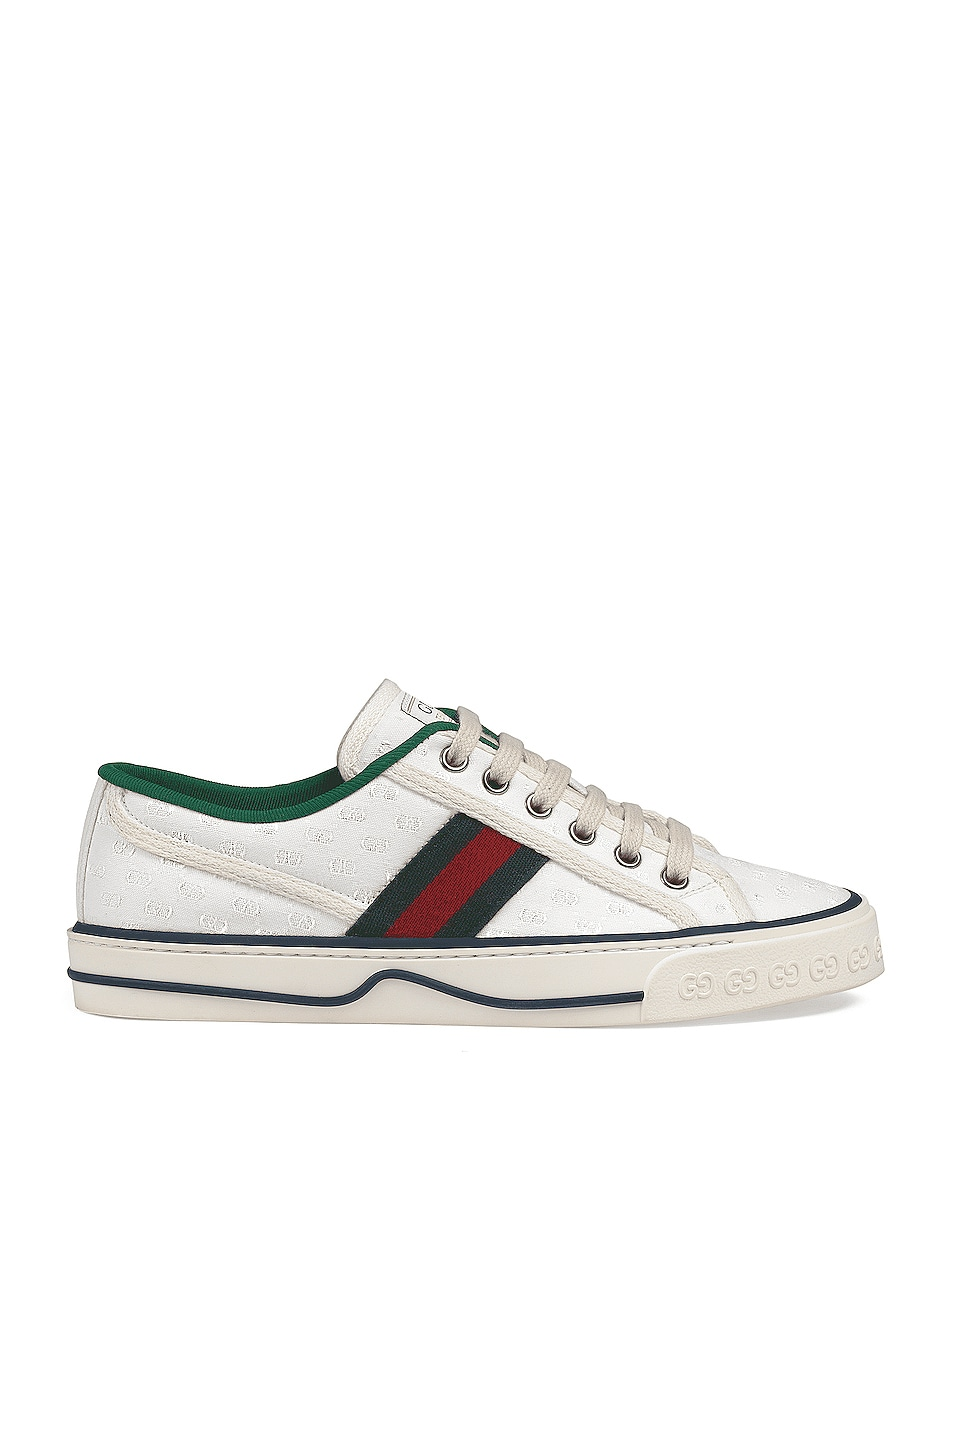 Image 1 of Gucci Gucci Tennis 1977 Sneakers in Bianco